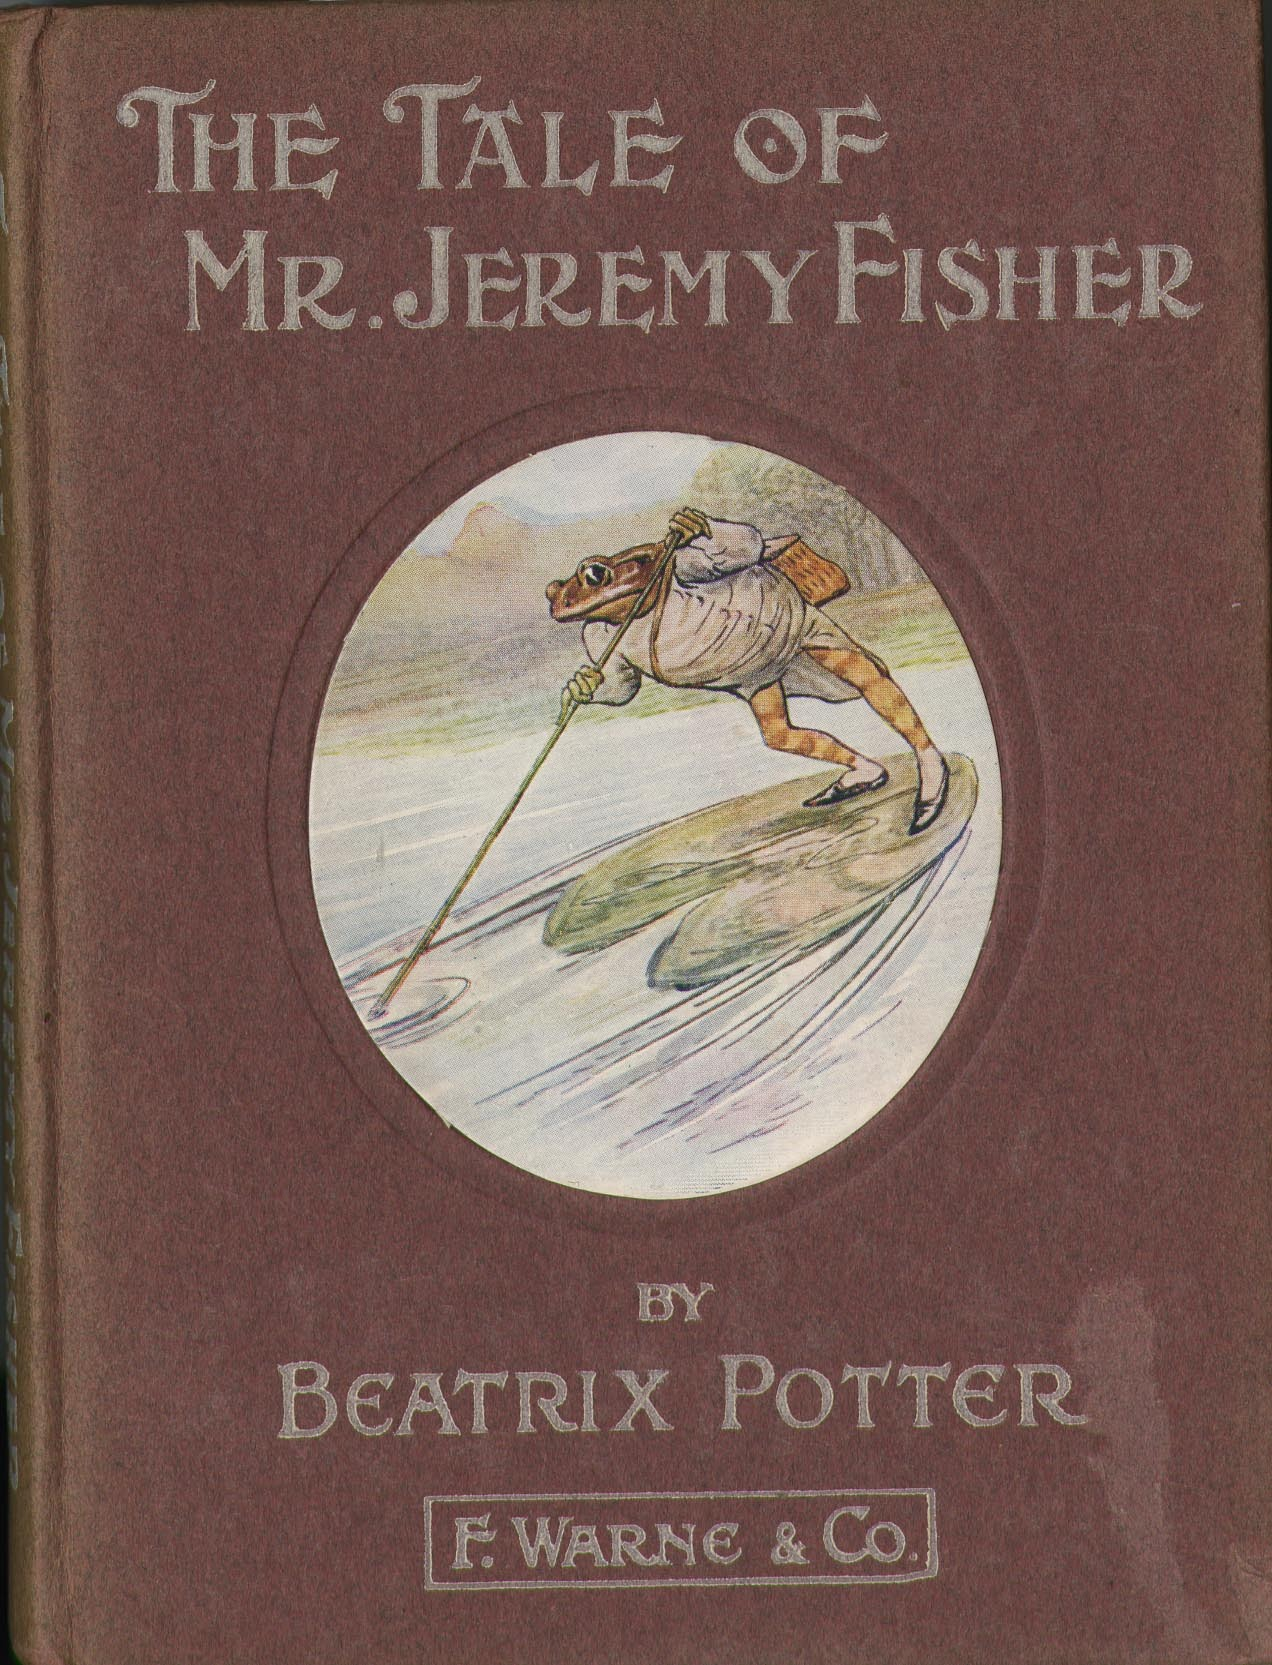 Beatrix Potter's Tale of Mr. Jeremy Fisher